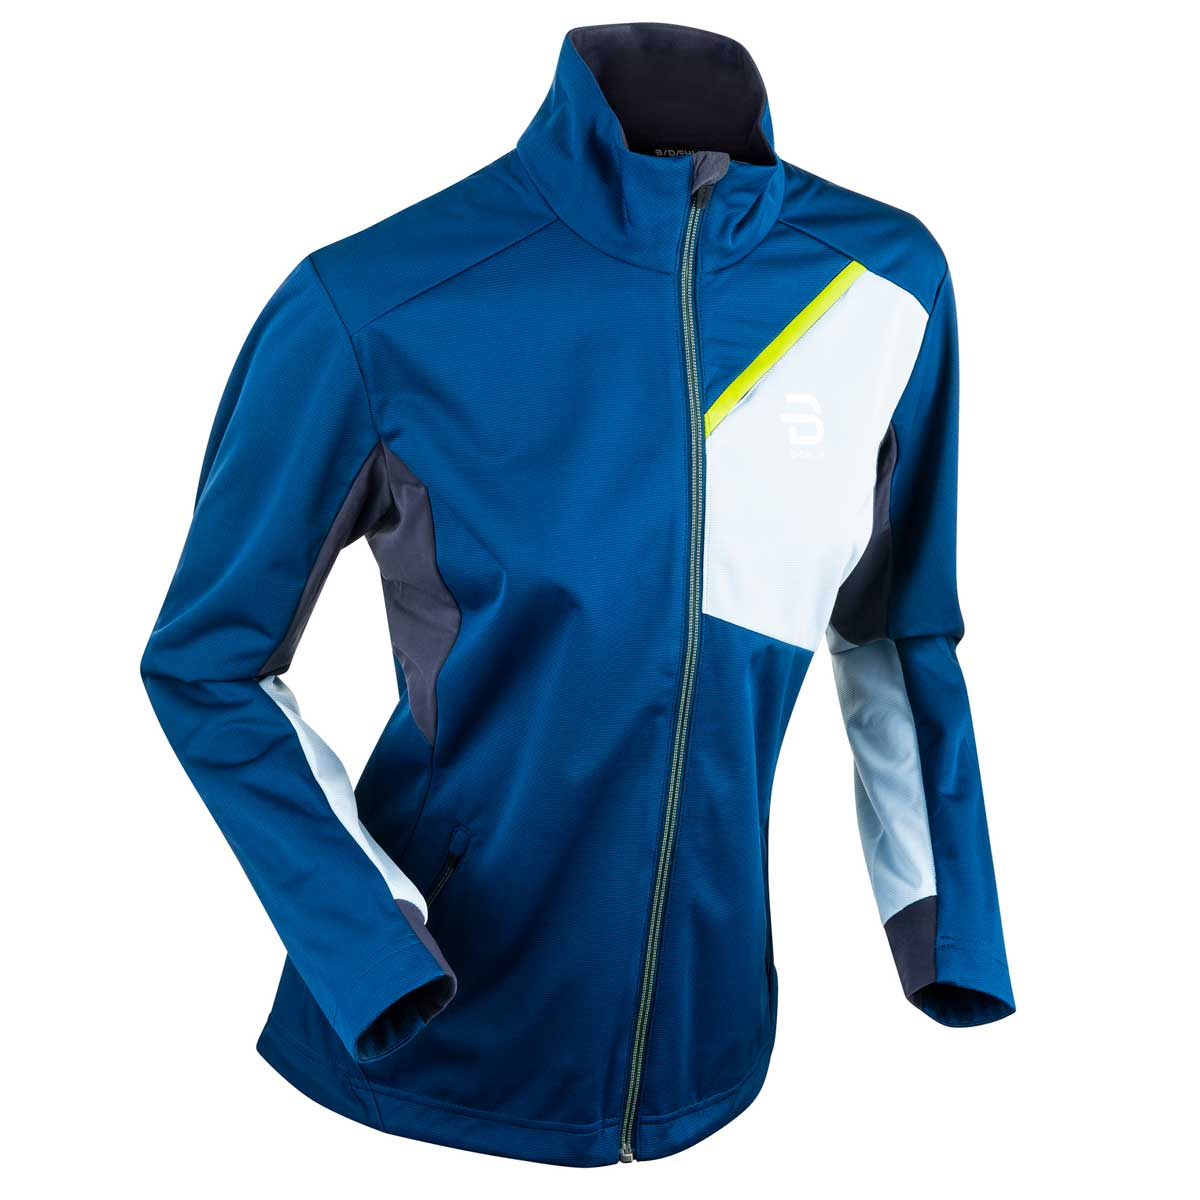 Bjorn Daehlie Women's Contender Jacket in Estate Blue